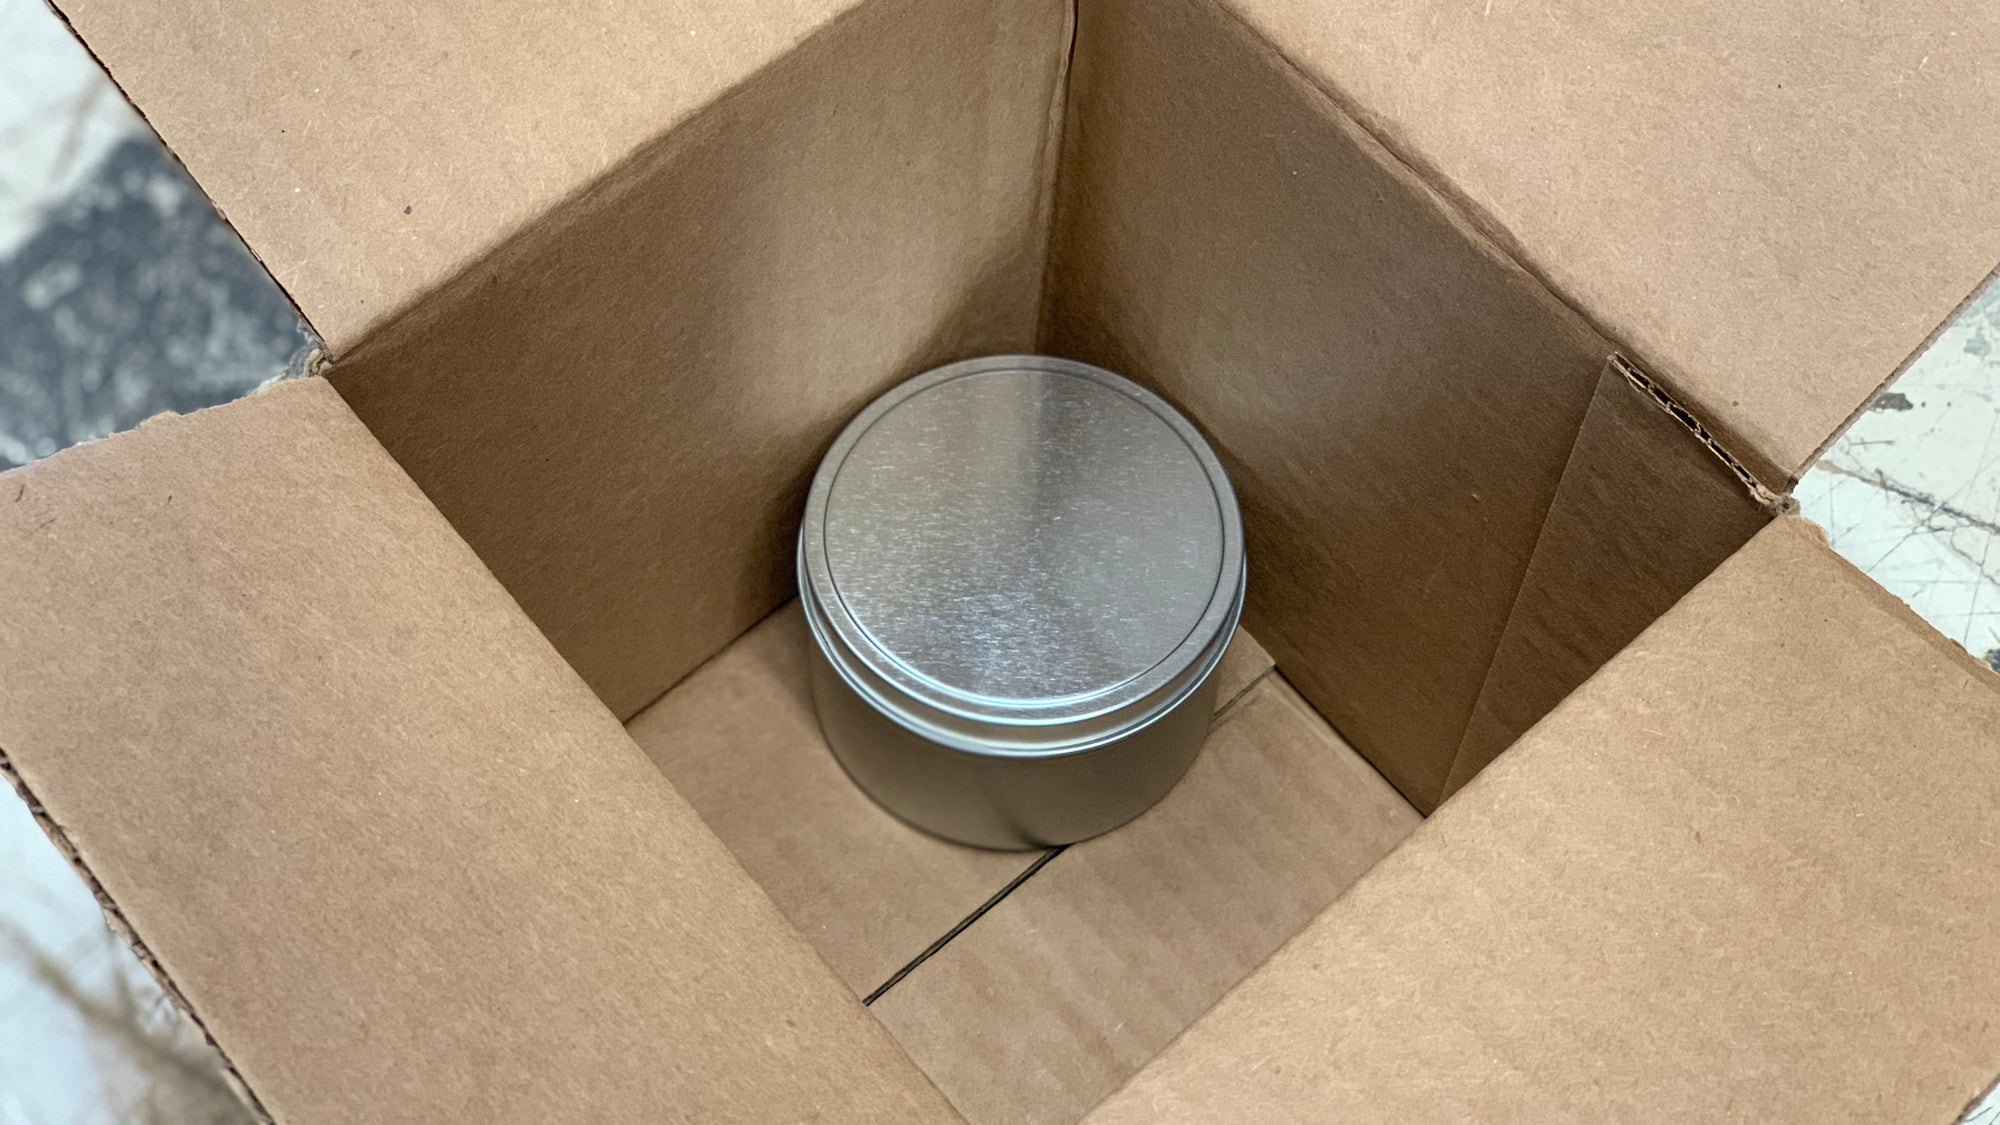 A candle tin a box that's too big